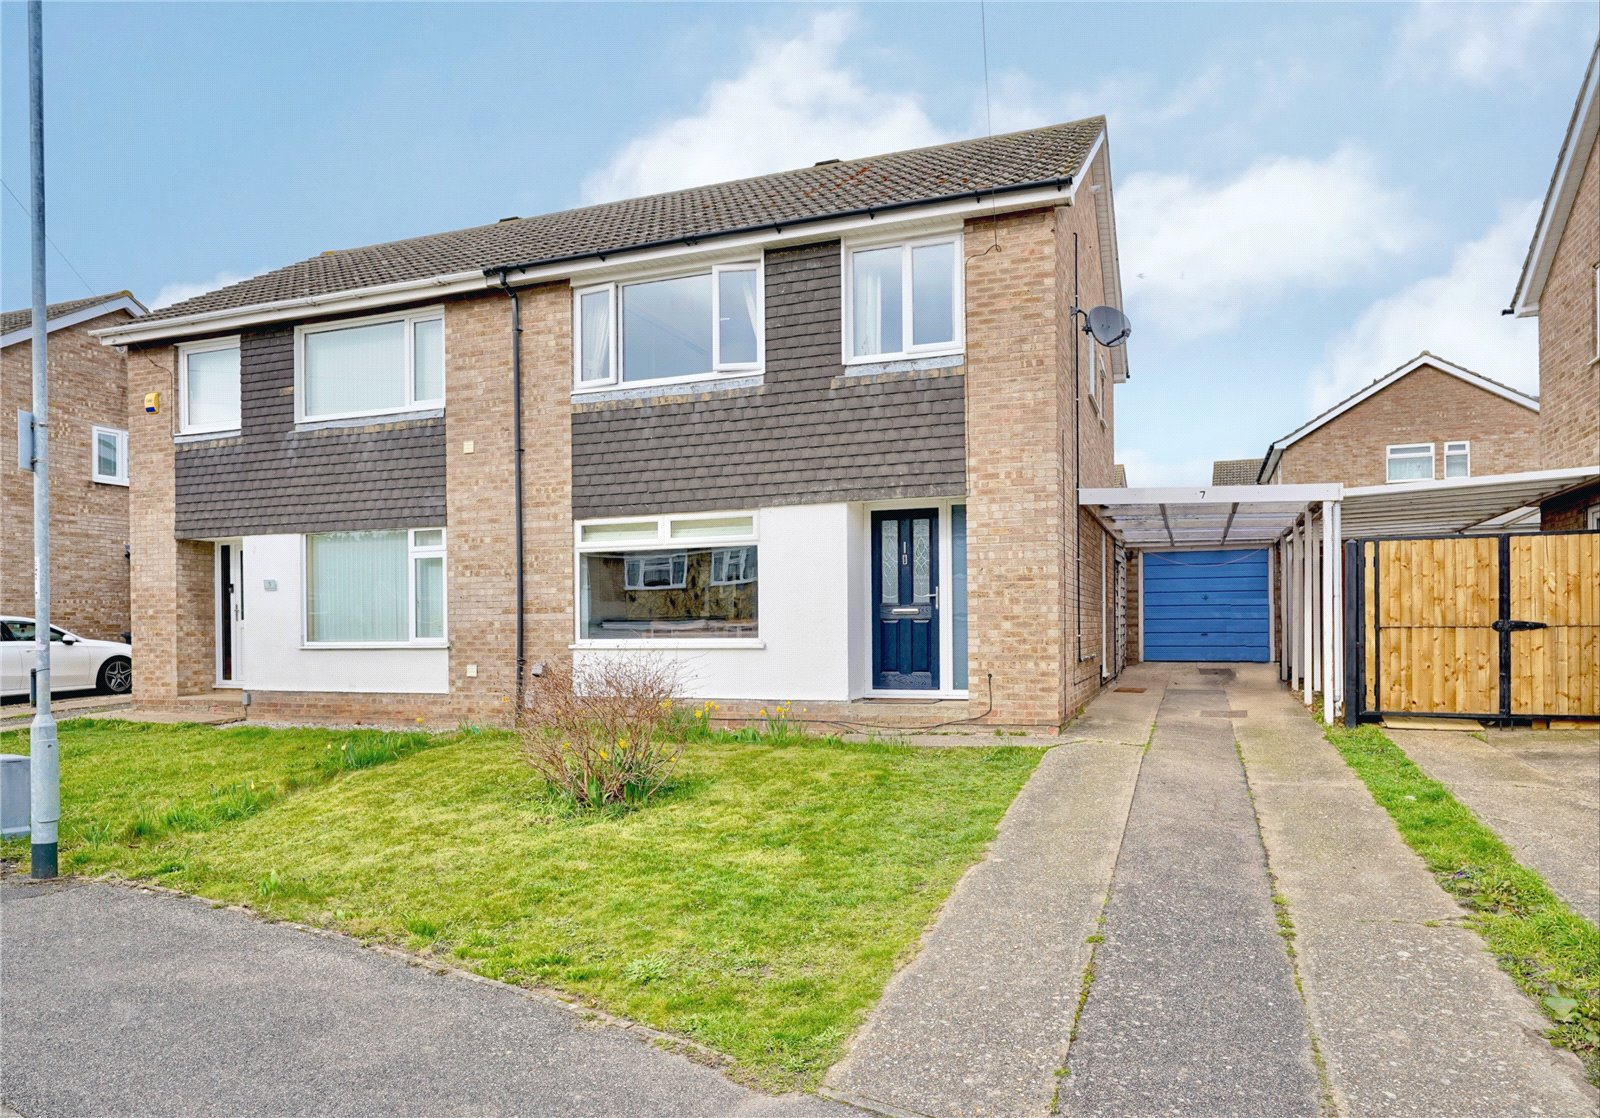 3 bed house for sale in Humberley Close, Eynesbury, PE19